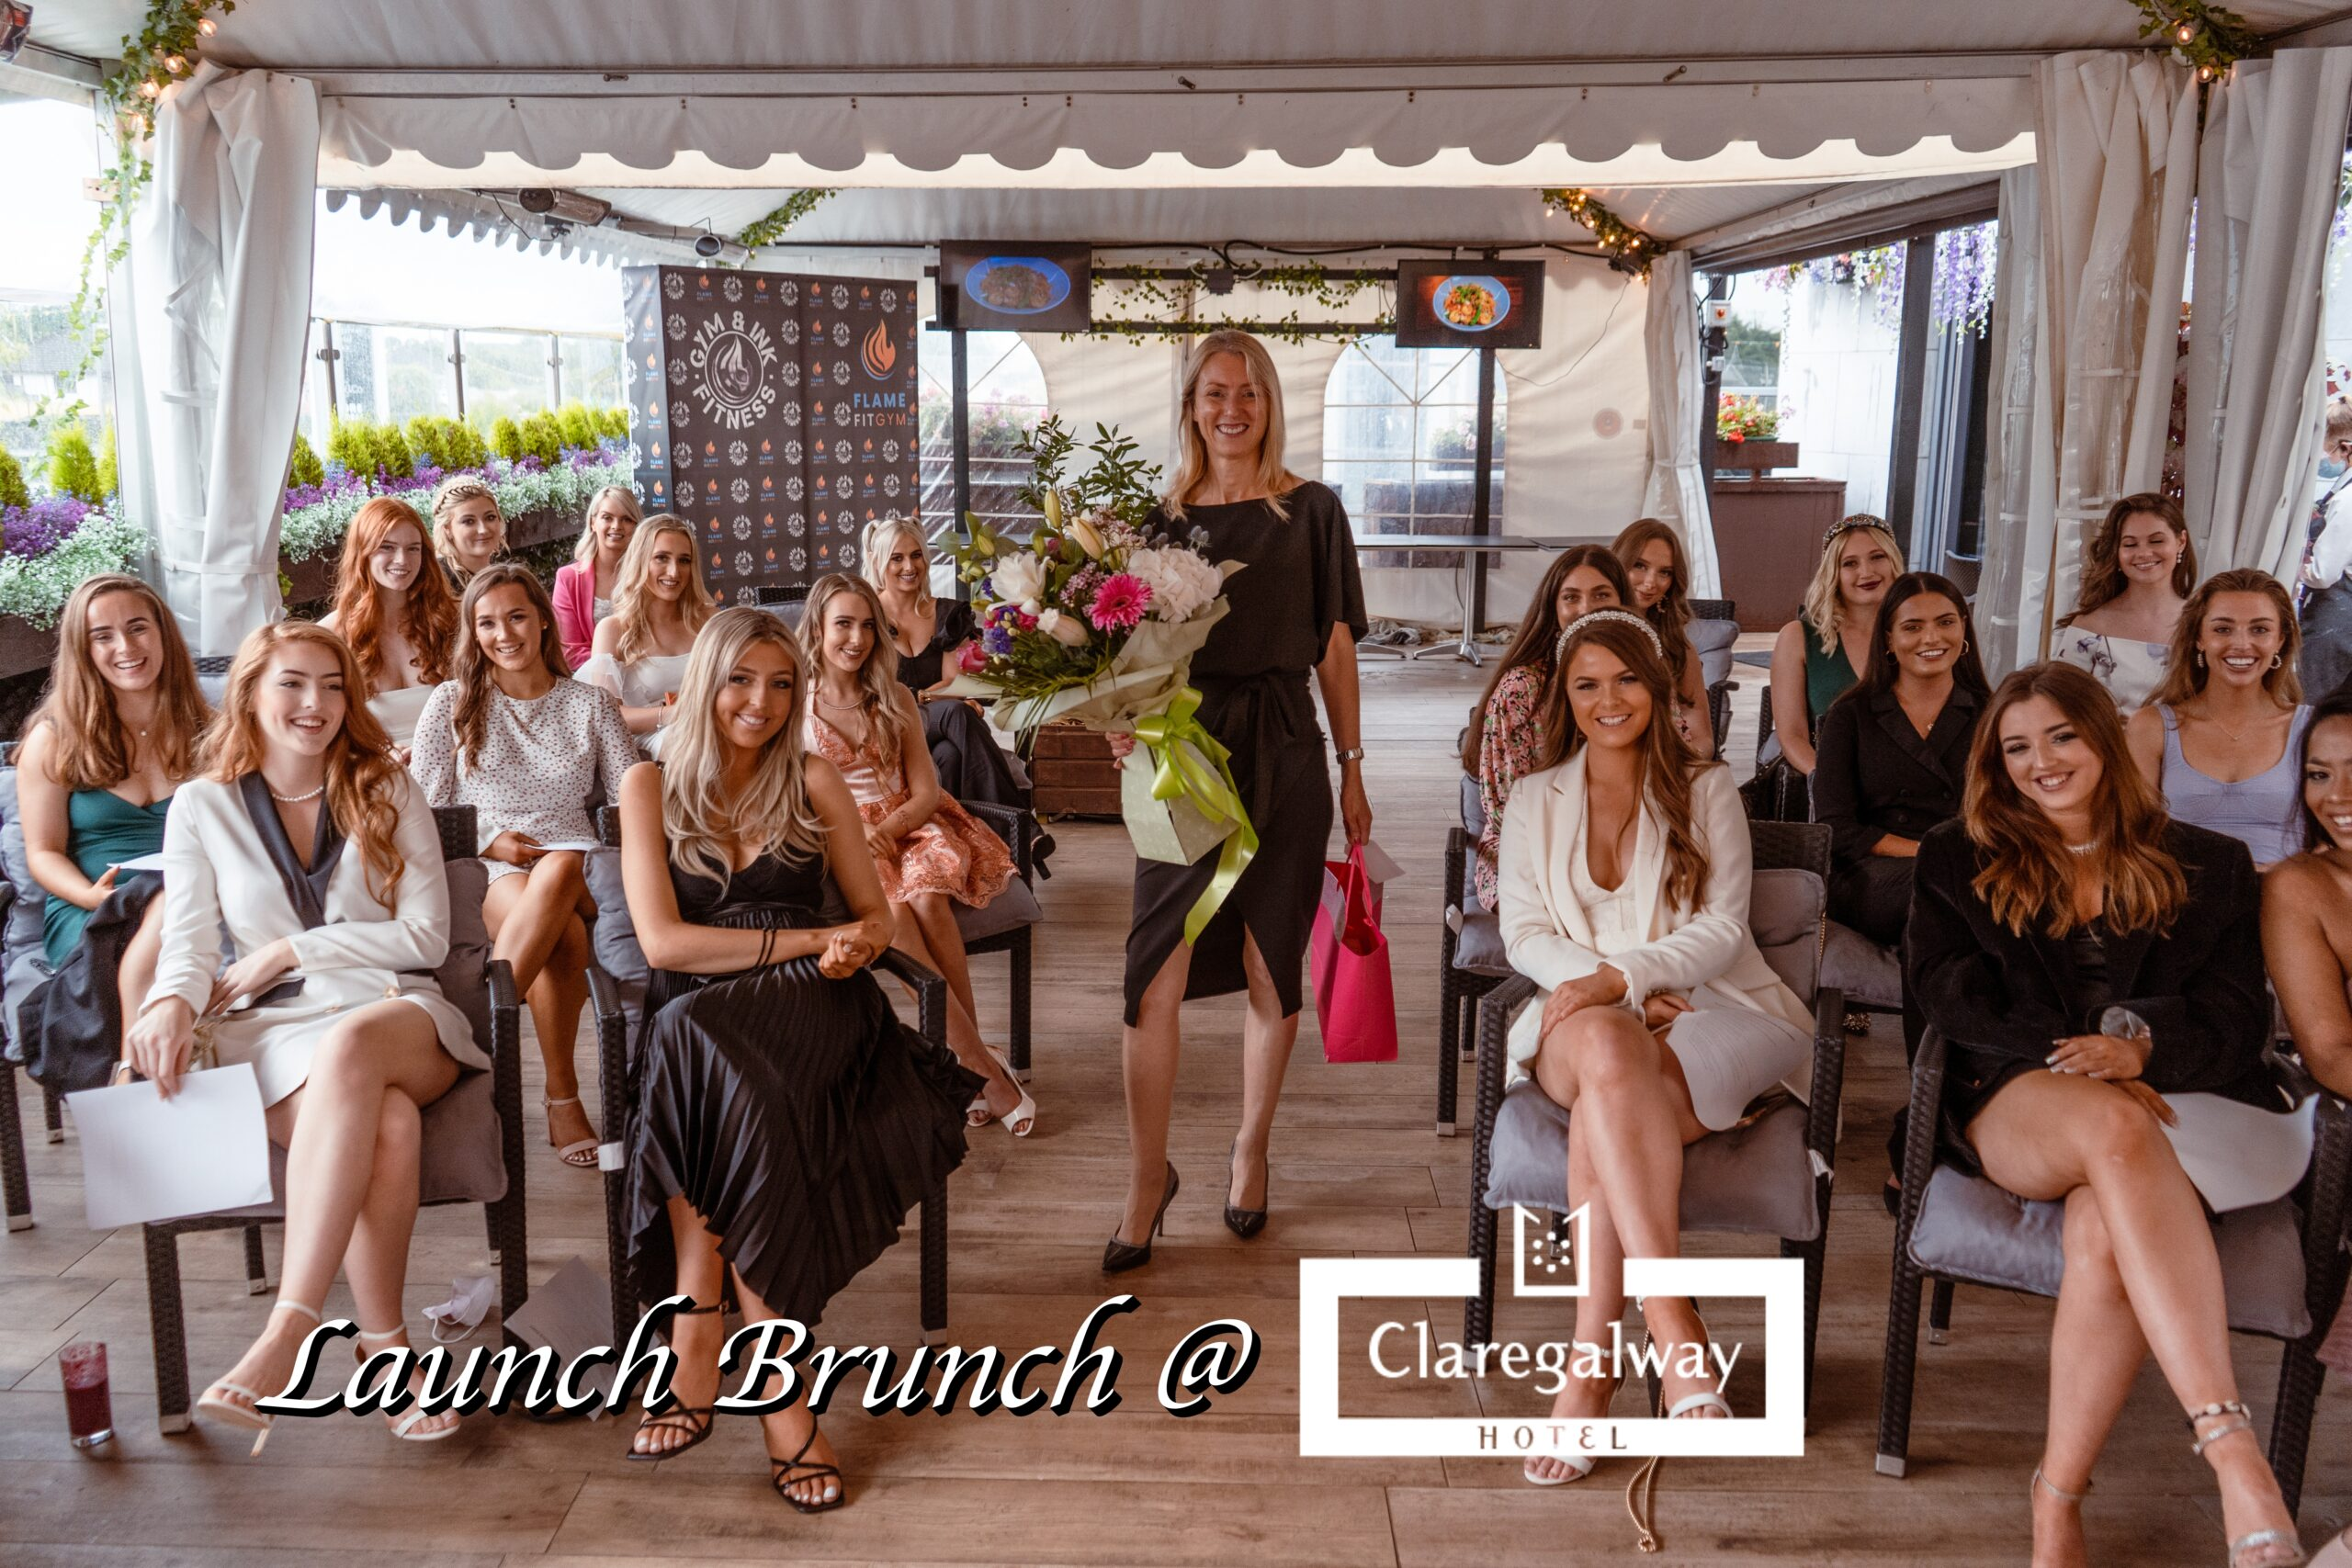 Launch Brunch At Claregalway Hotel